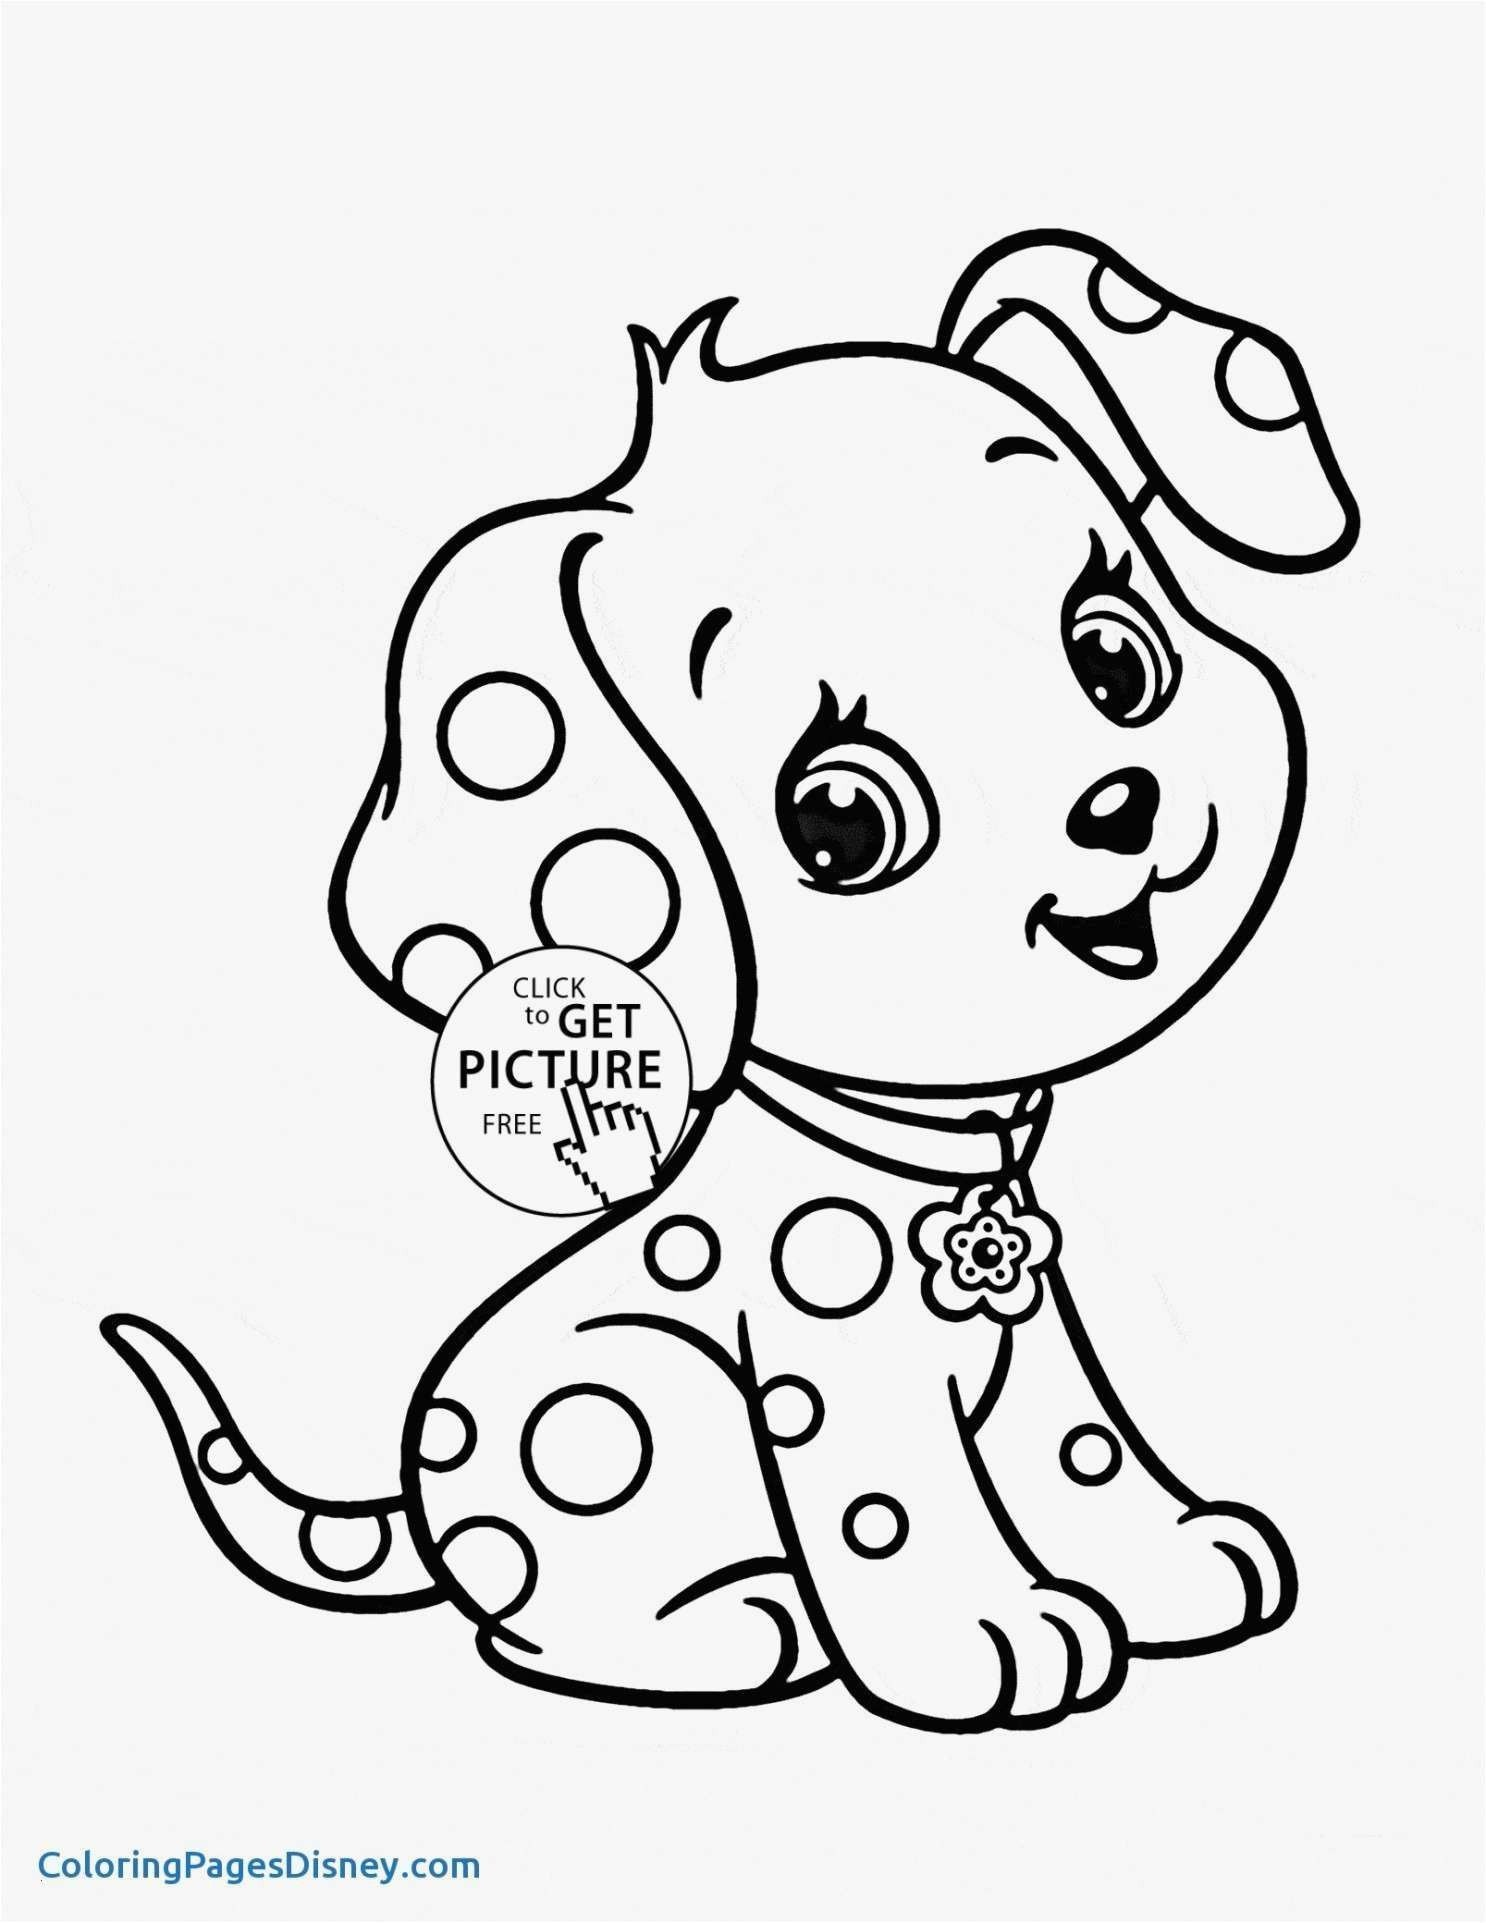 Elegant Disney Valentine Coloring Pages – Jvzooreview - Free Printable Disney Valentine Coloring Pages